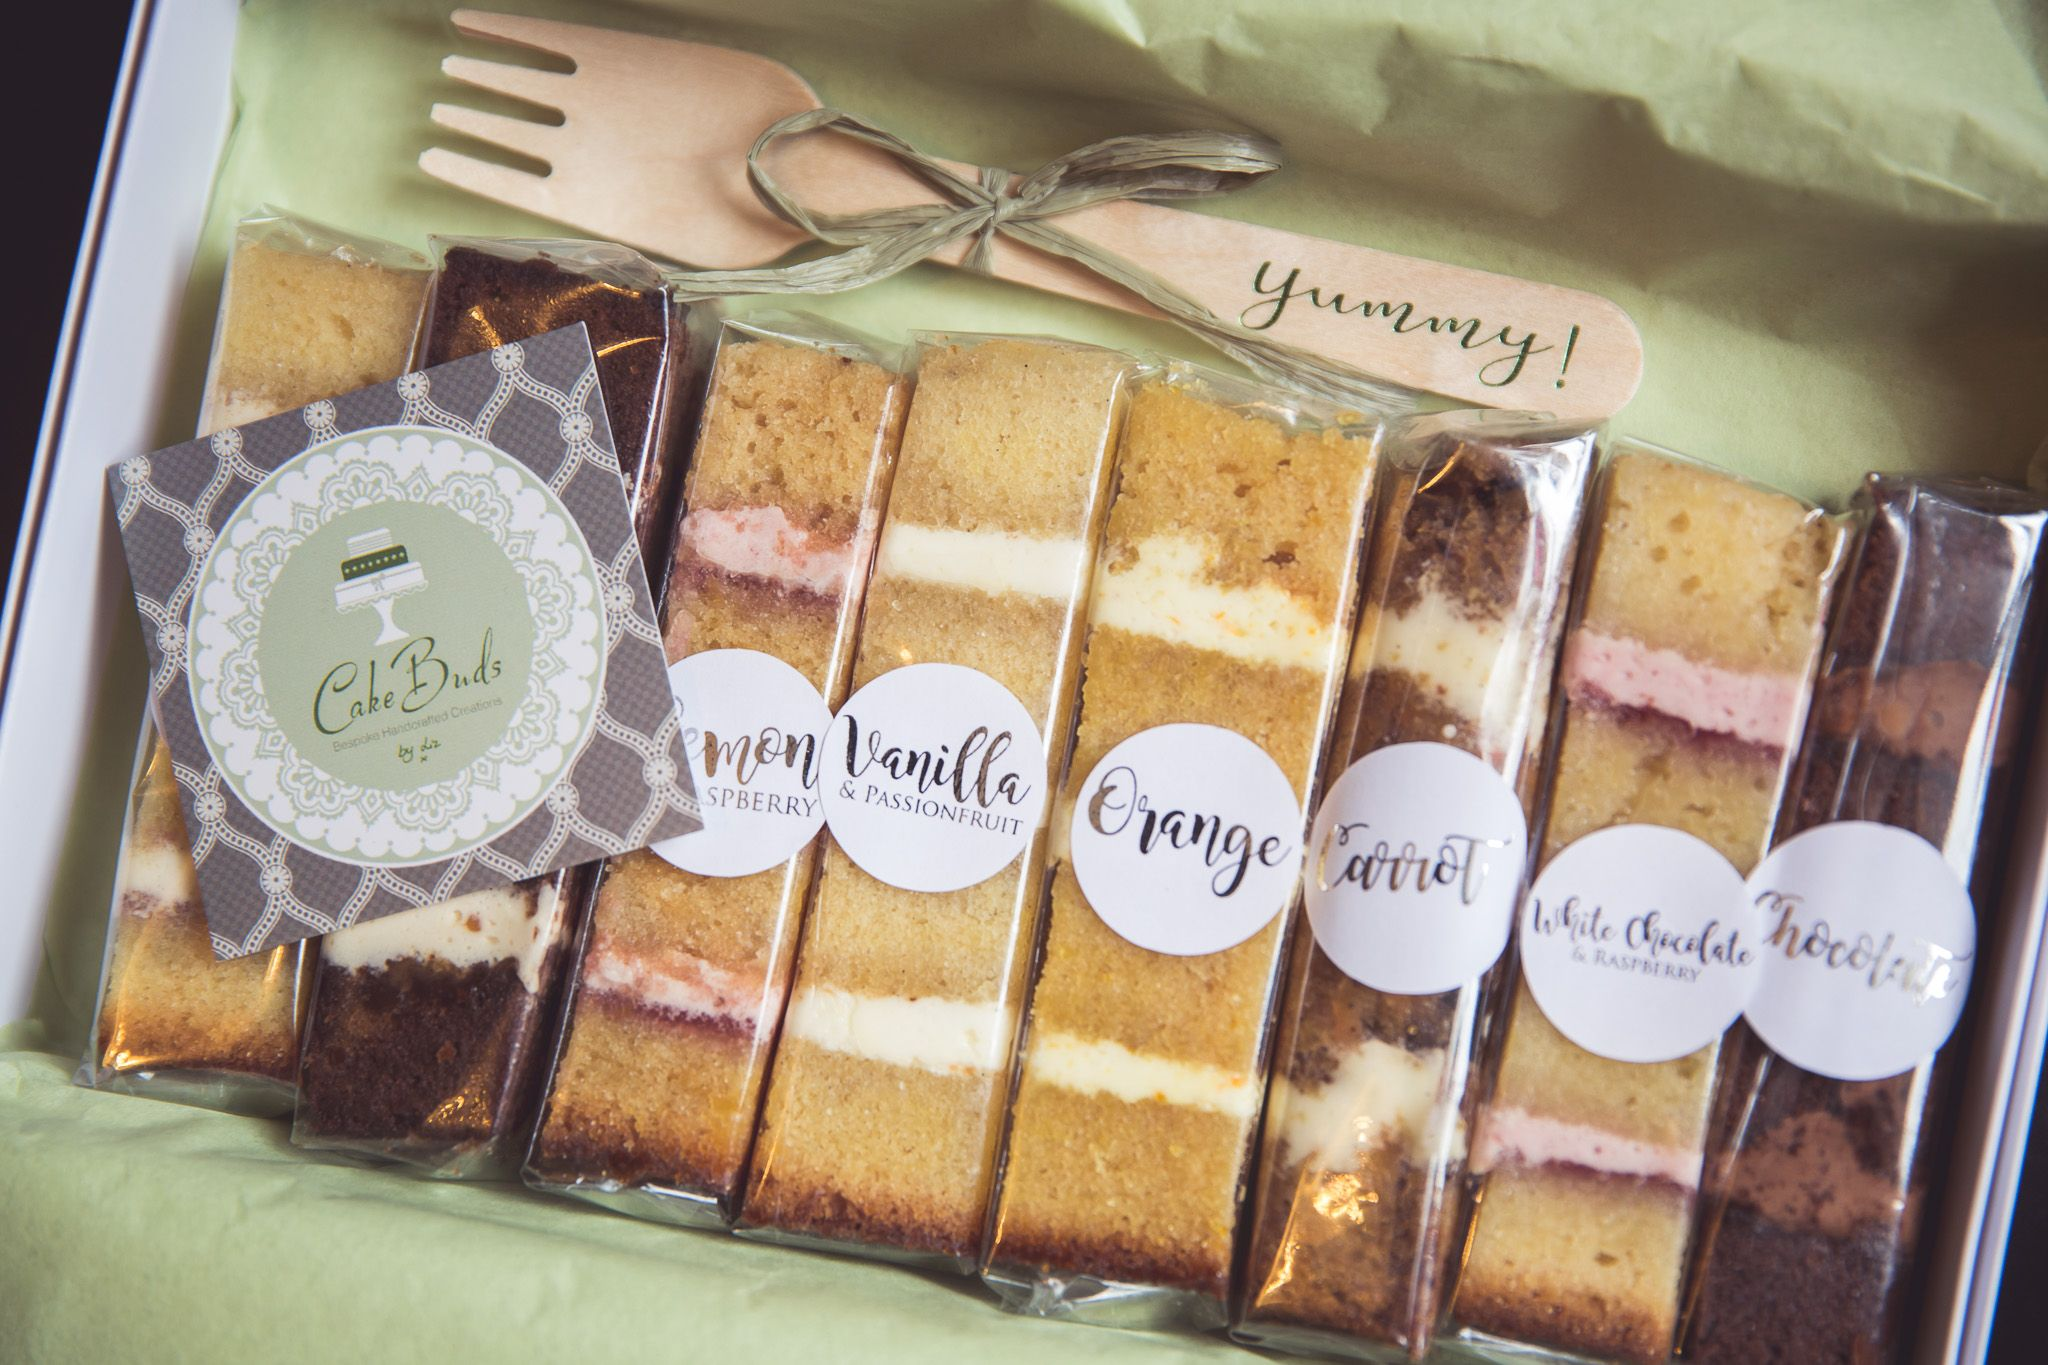 Cakebuds wedding cake sample boxes are perfect if you can